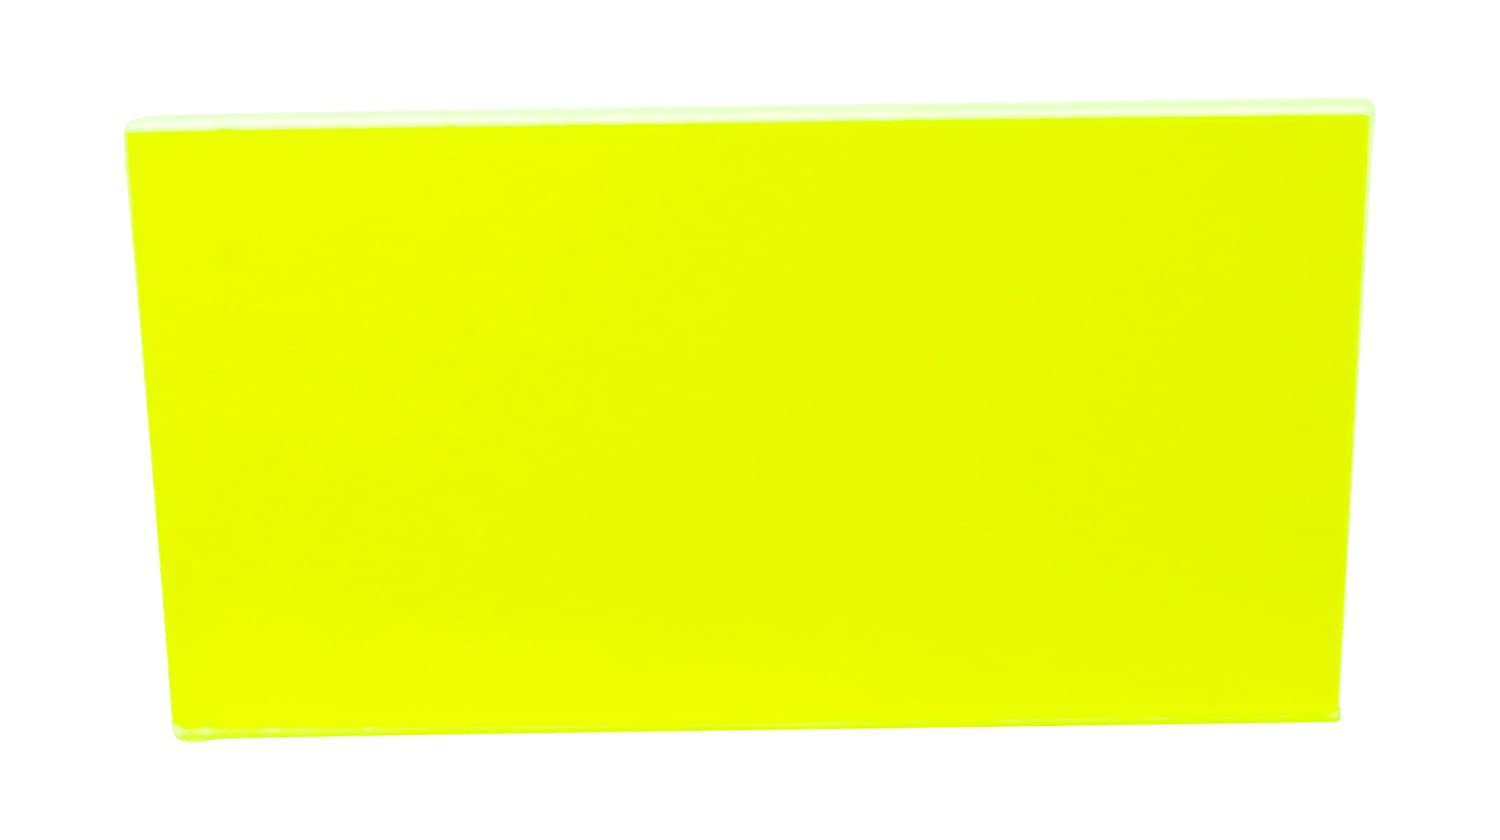 "Cheap Falken Design Corporation FLUOR-GN9093-1-8/1224 Plastic Acrylic Plexiglas Lucite Acrylic Fluorescent Green Sheet, Transparent 92%, 12"" x 24"", 1/8"" Thick supplier"